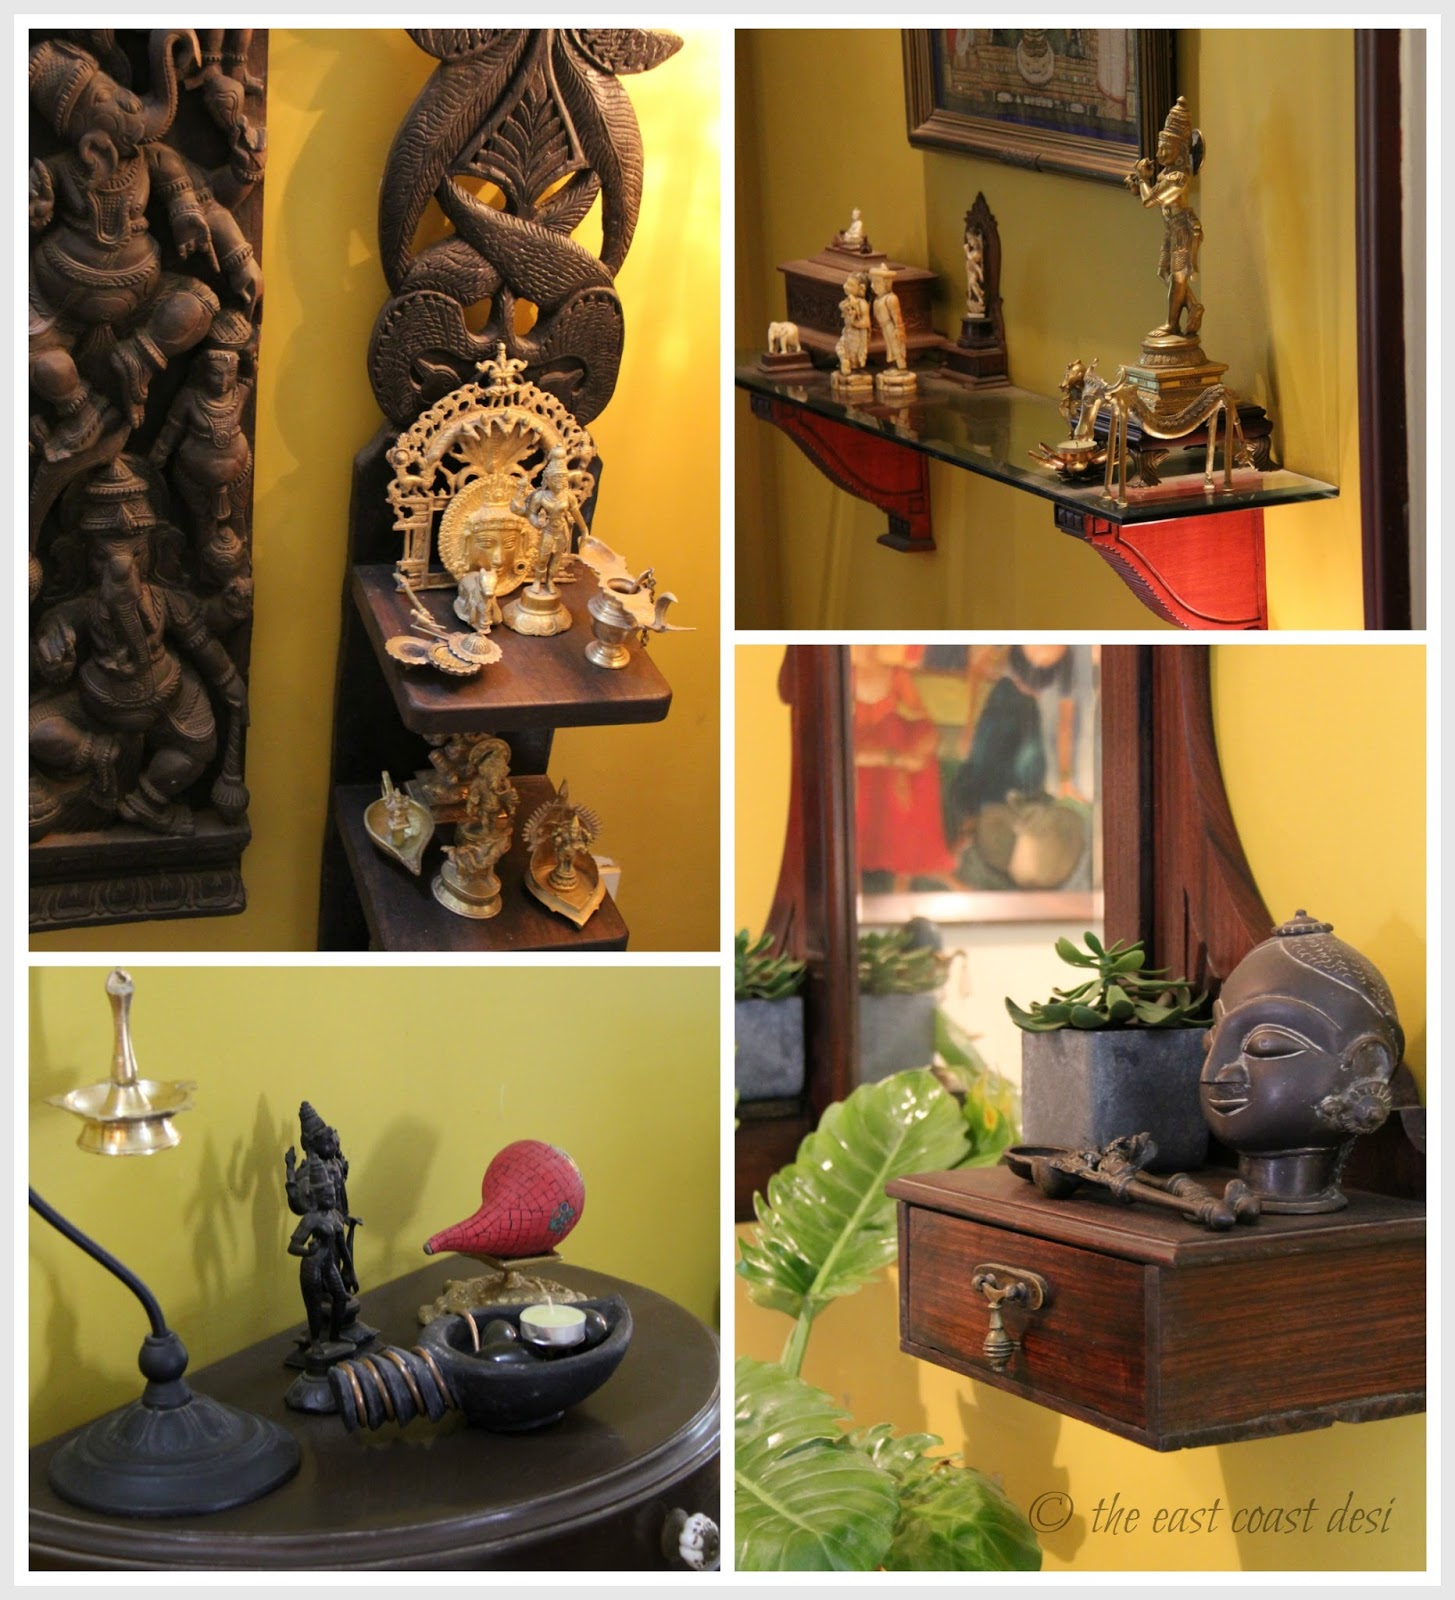 Hindi Home Decor Ideas: The East Coast Desi: Living With What You Love (Home Tour